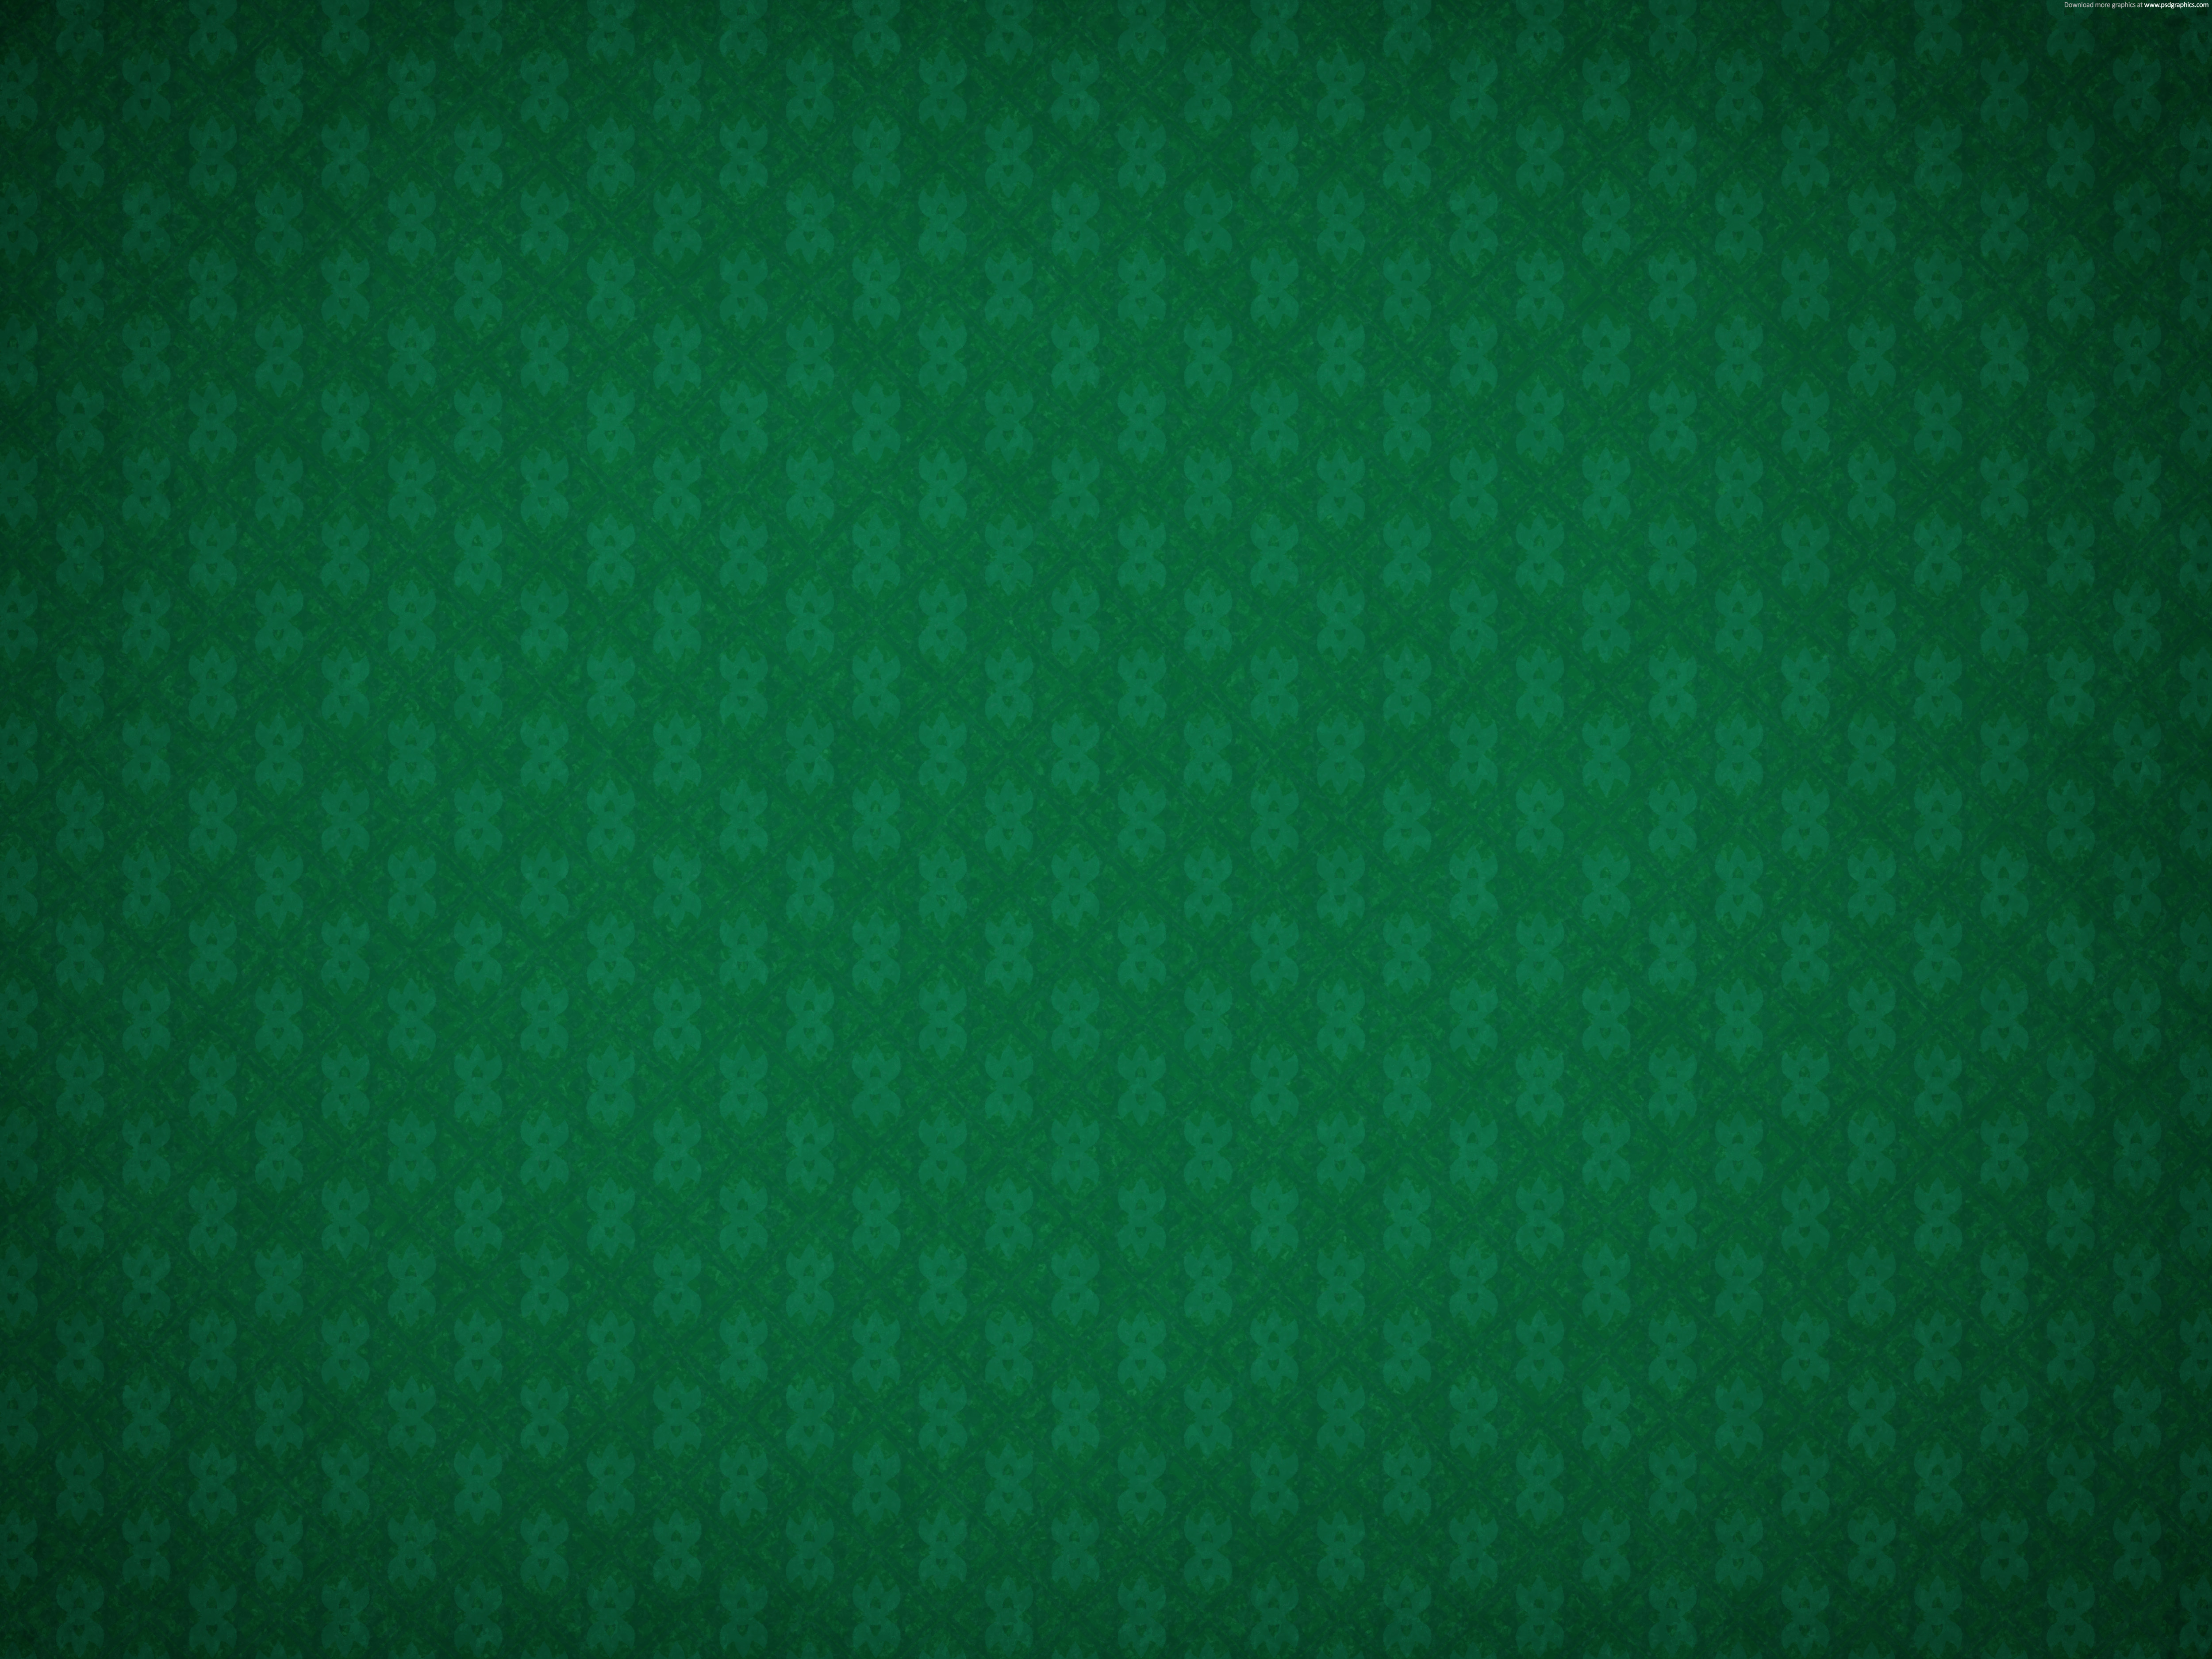 Tissue Green Pattern Wallpaper